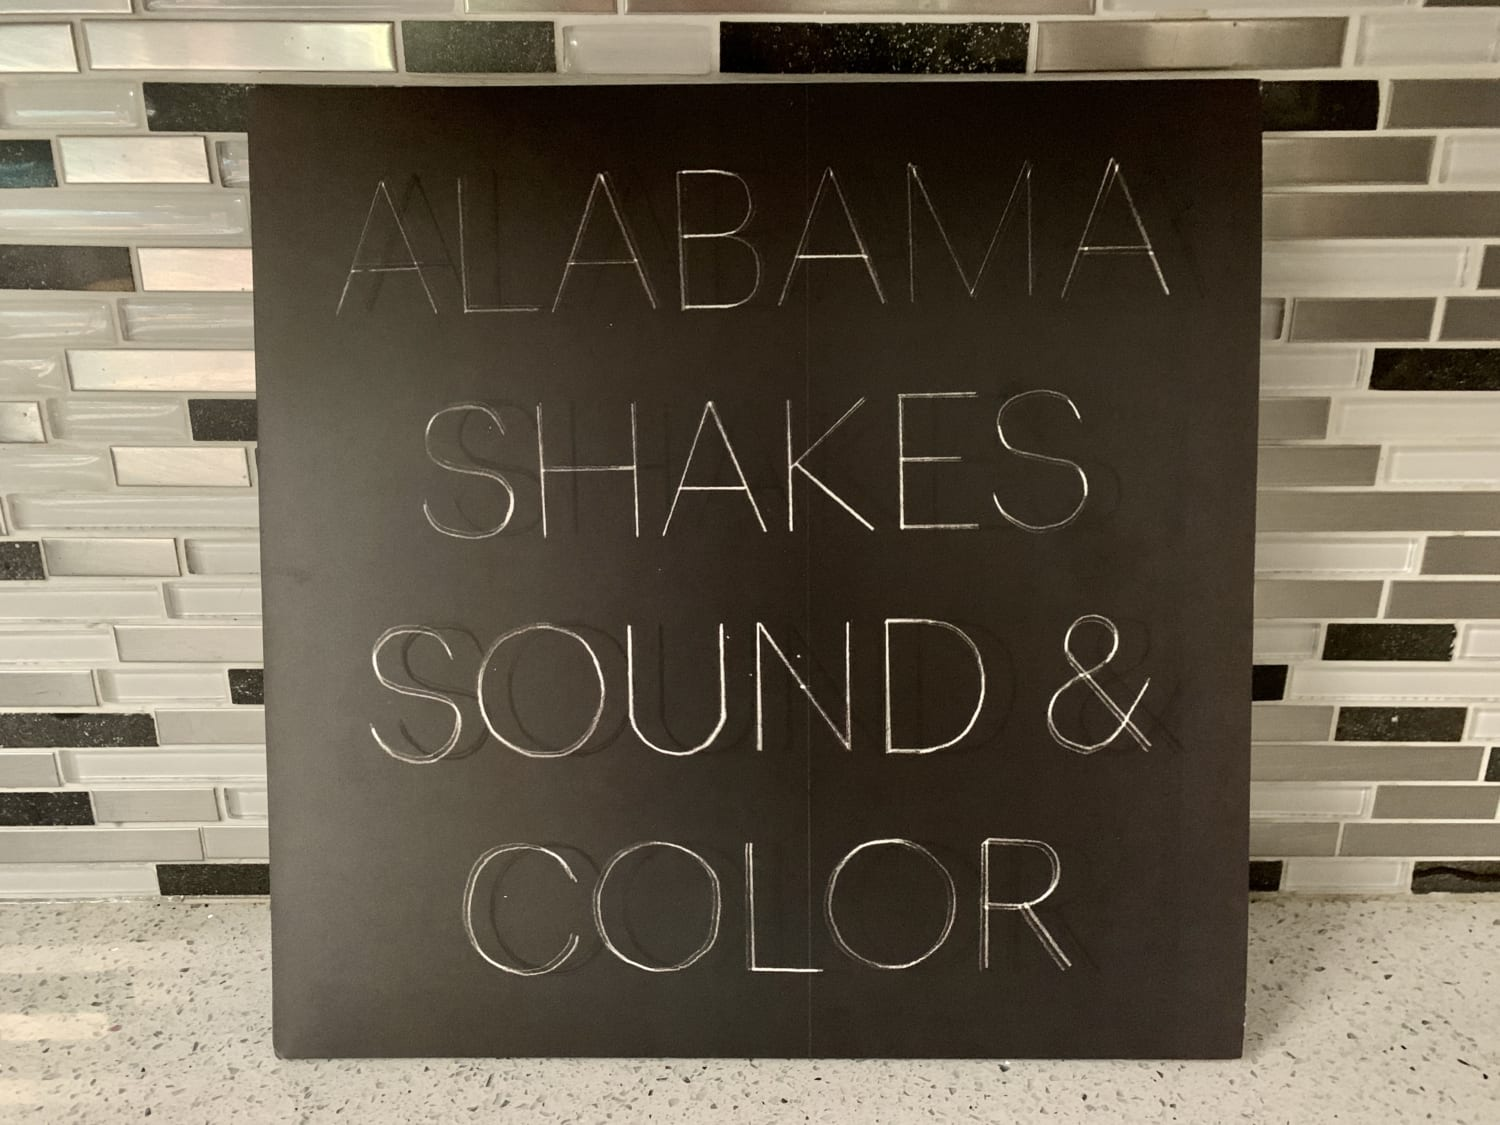 Image of Alabama Shakes' album Sound & Color on clear vinyl. This is one of three albums William Dyson would listen to forever.